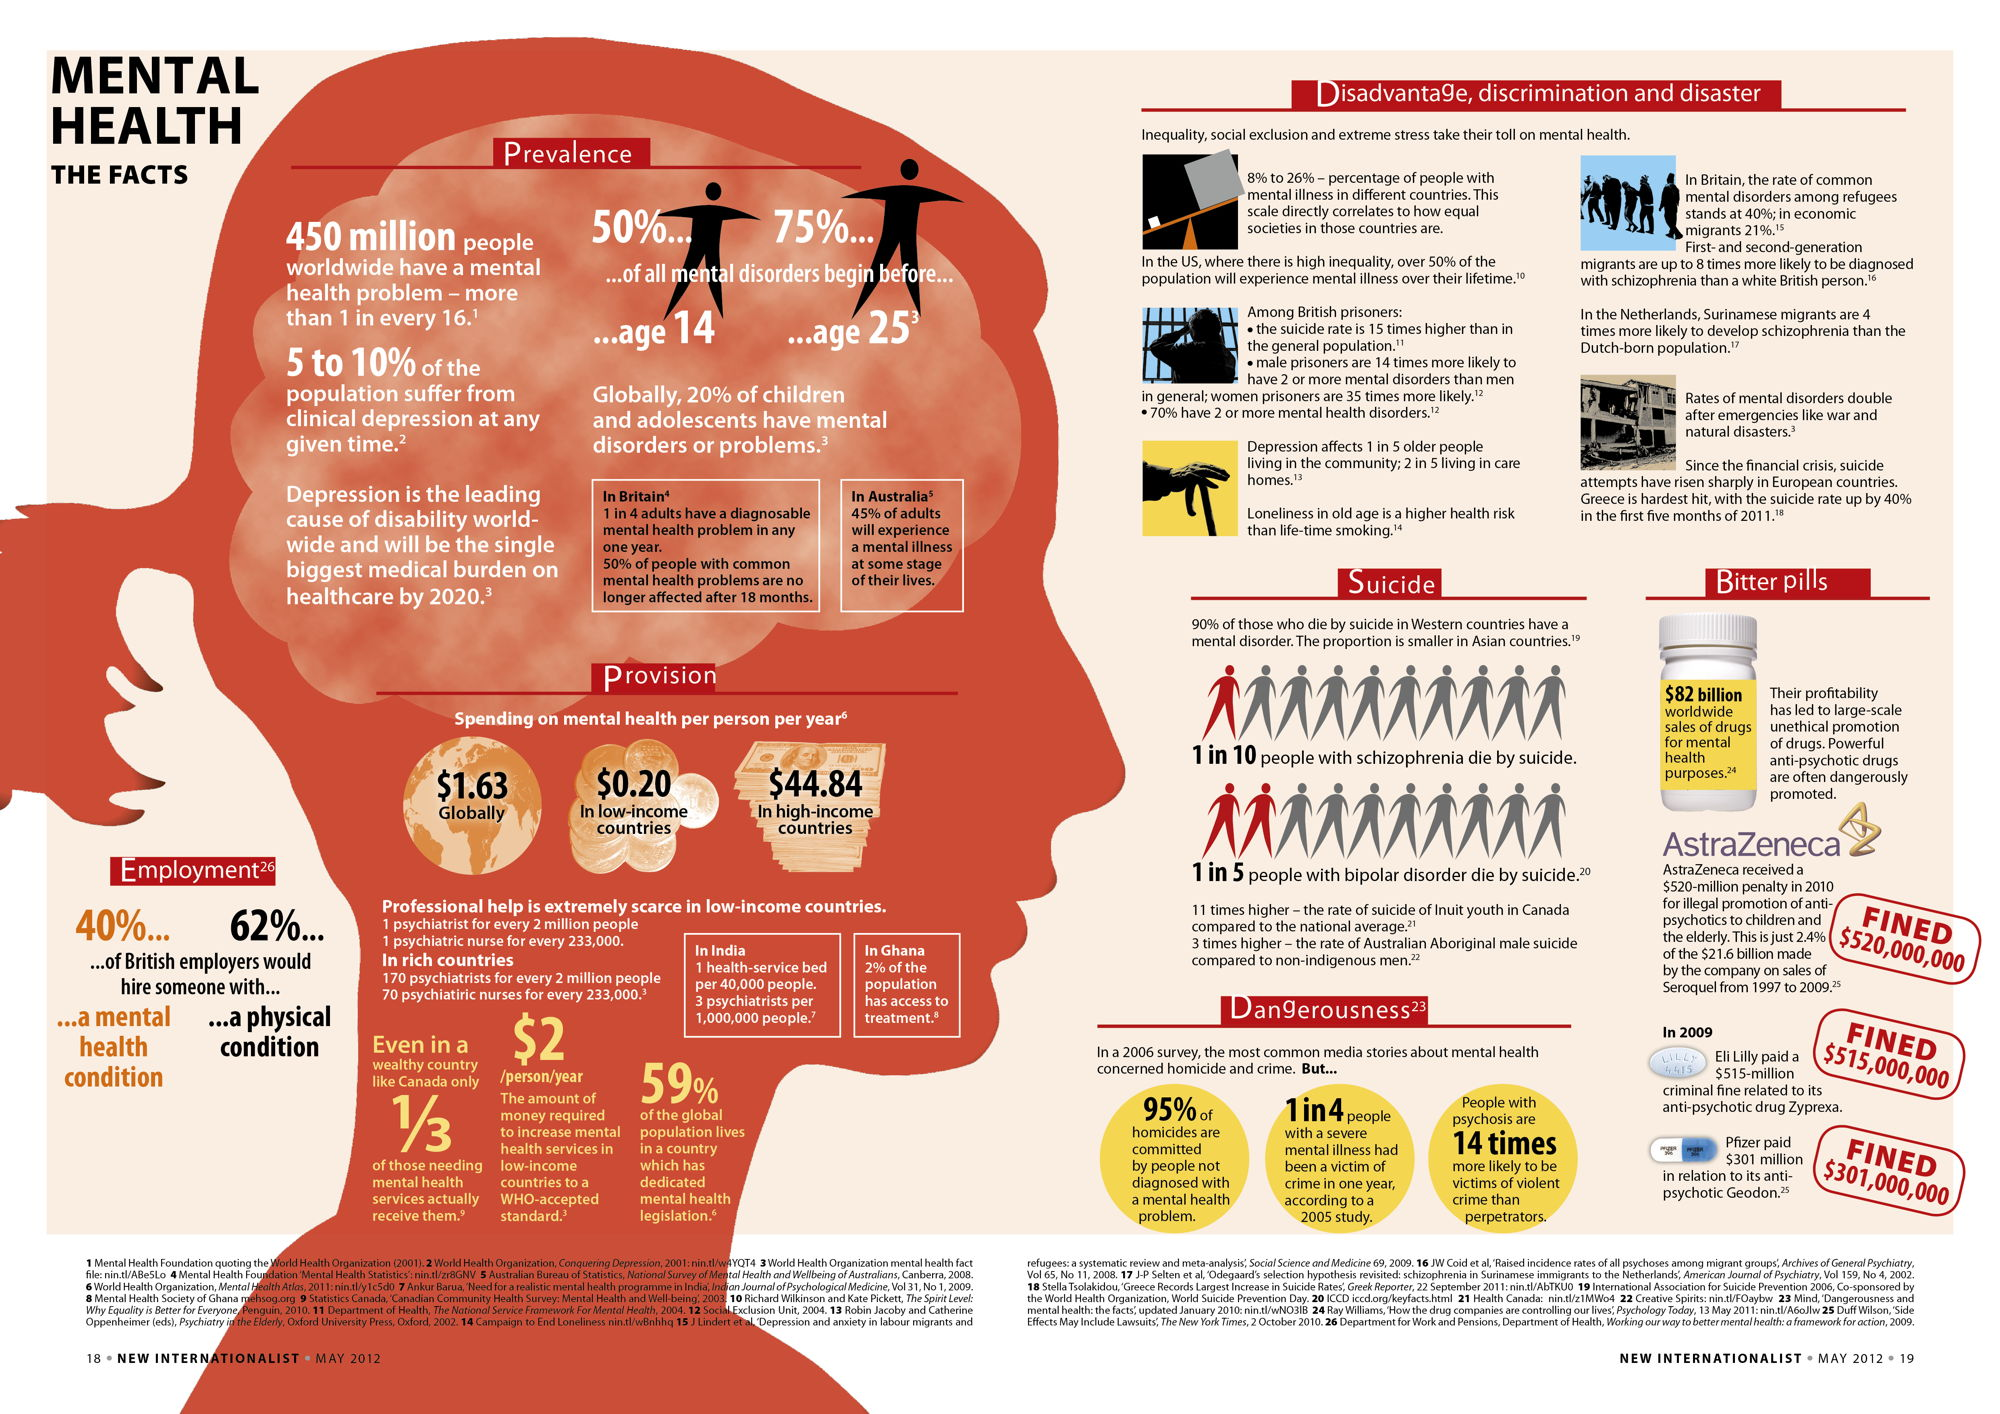 452-18-mental-health-facts